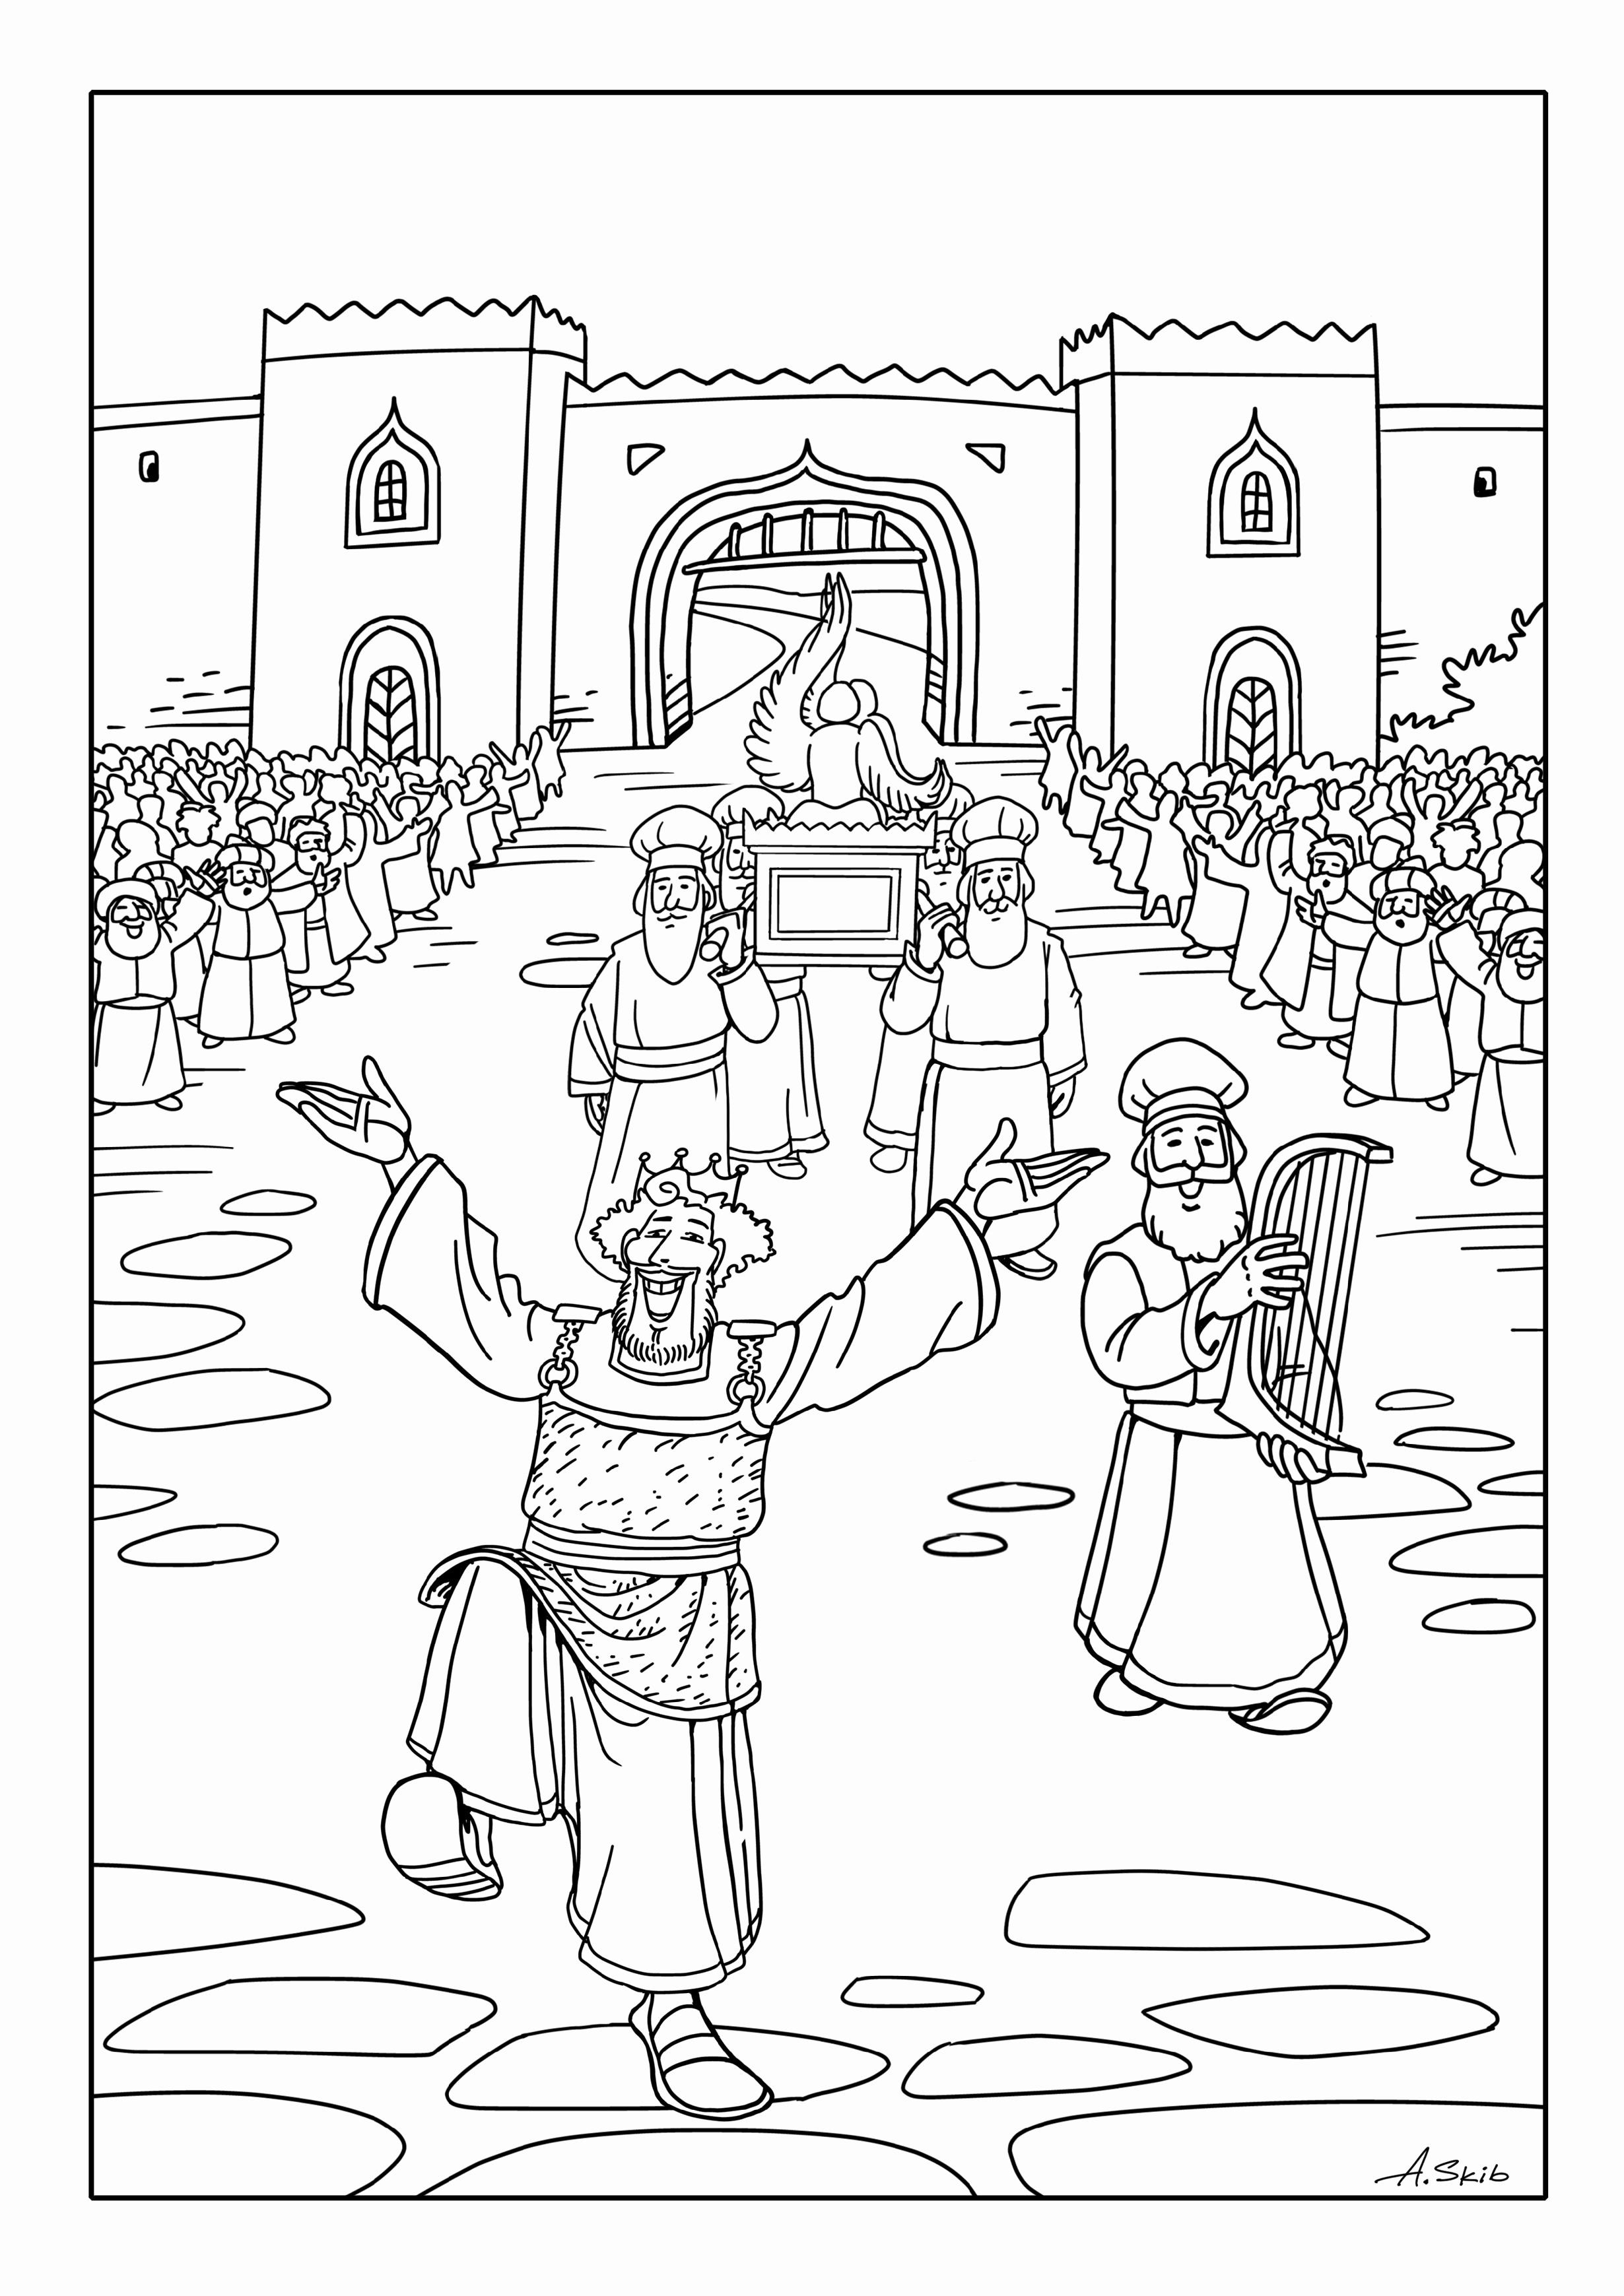 ark of the covenant pictures to color games coloring pages catherine zoller ark color pictures of covenant to the